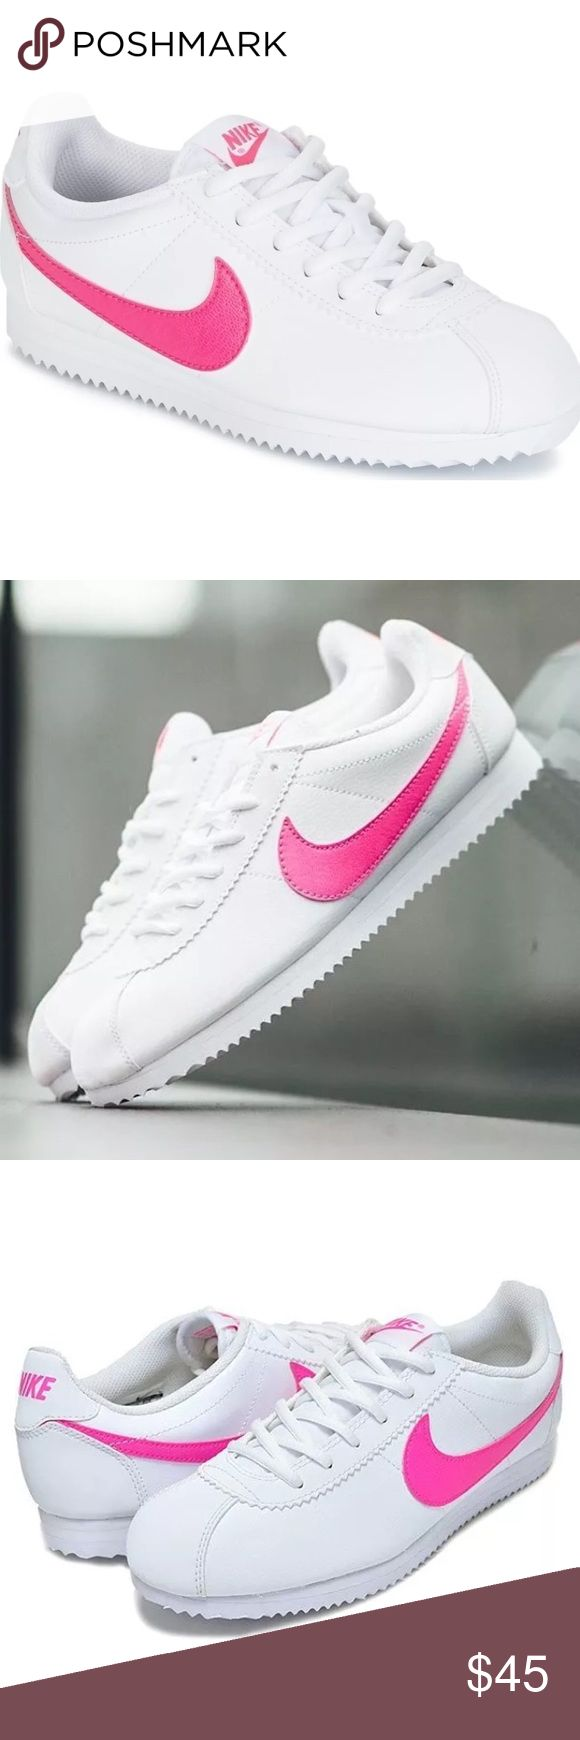 Nike classic Cortez leather white pink size 8.5 Brand new without box. Shoes are a size 7 youth which converts into a women's size 8.5. I have added a size chart for reference. 100% authentic. Ships same day or very next. Nike Shoes Sneakers